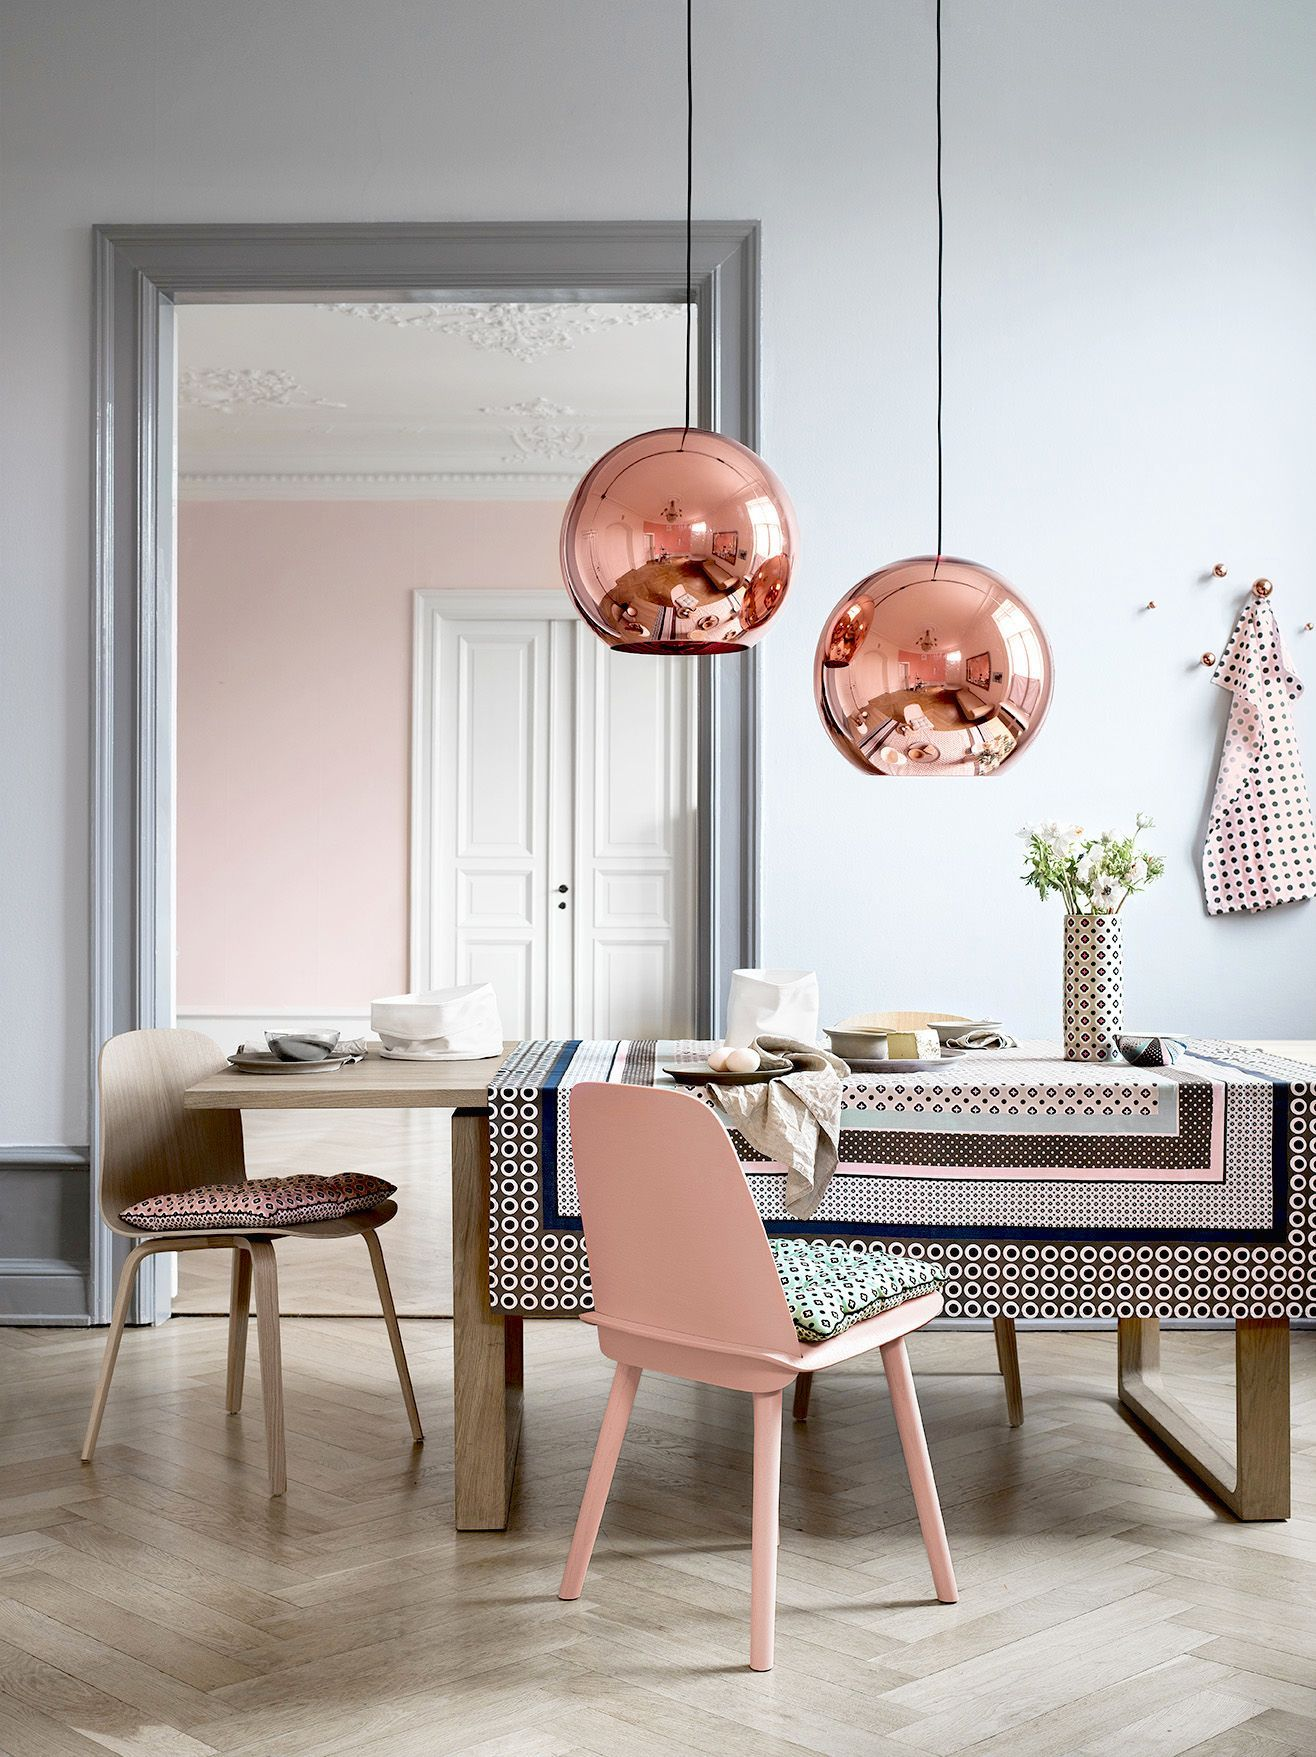 Design Oversized Pendant Light 20 examples of copper pendant lighting for your home large bowl fixtures